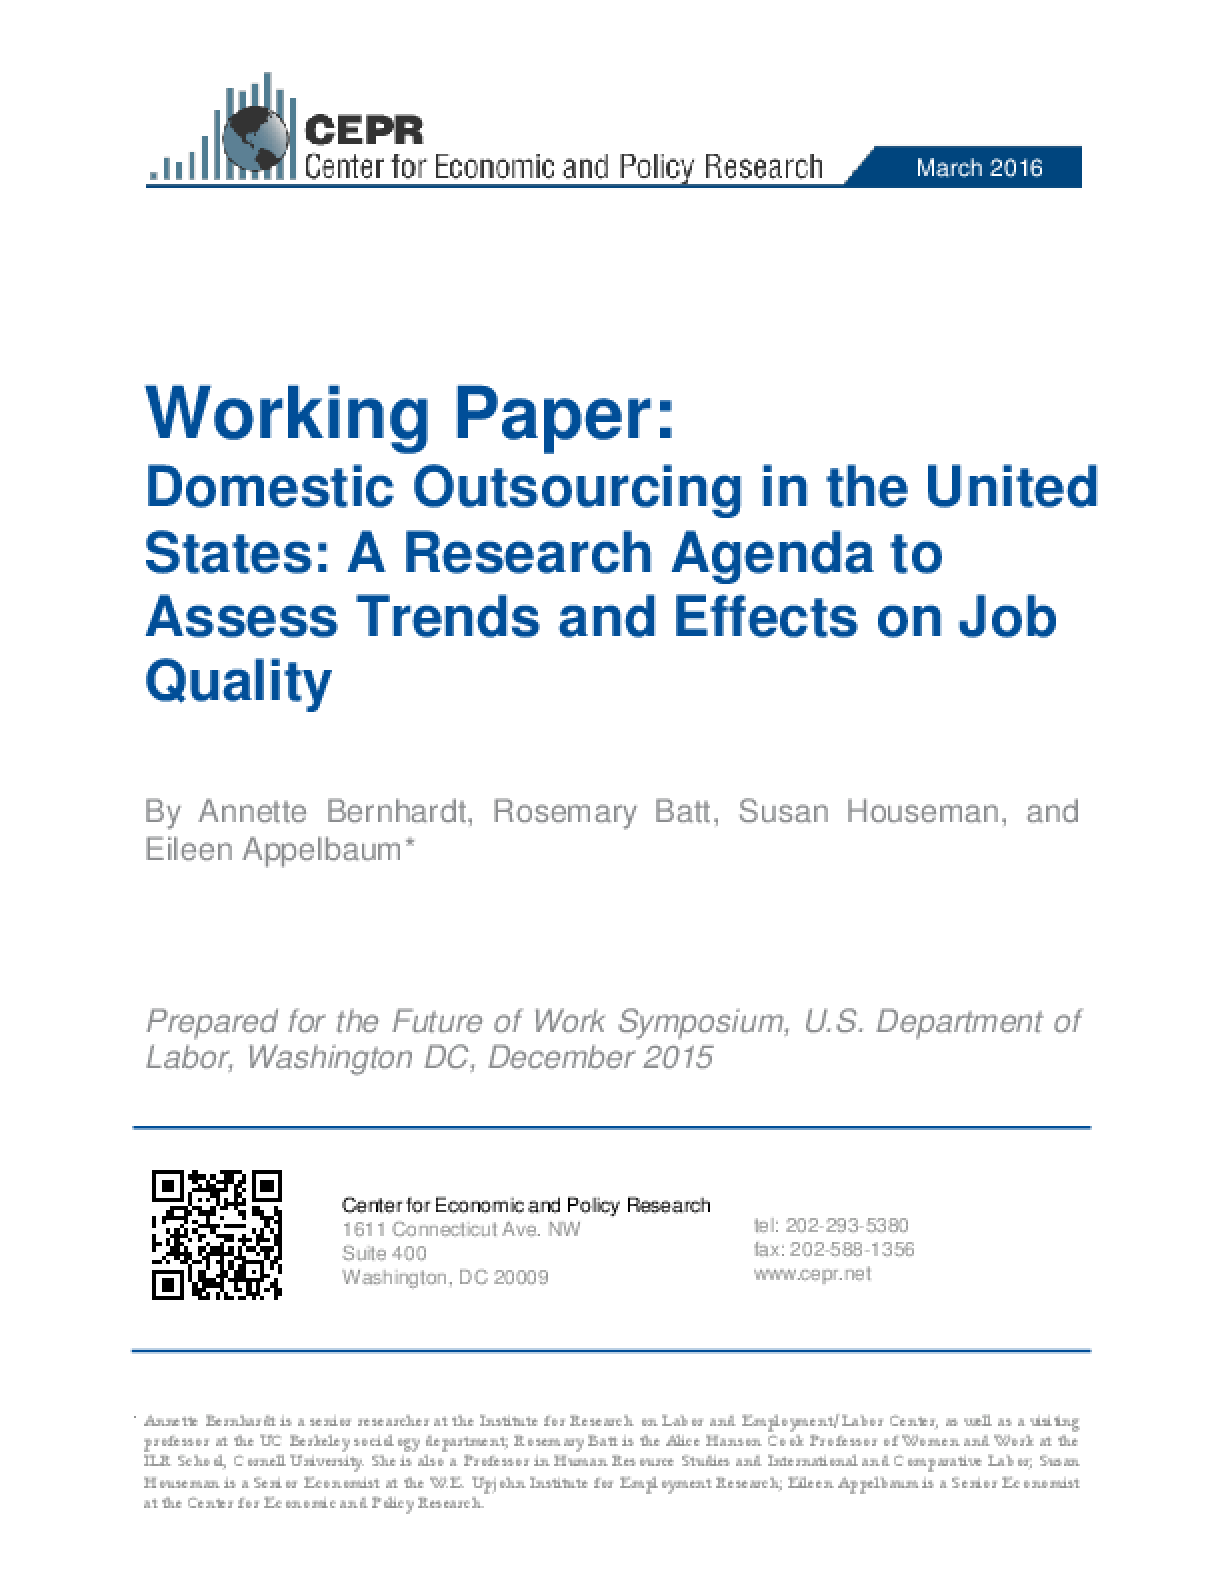 Domestic Outsourcing in the United States: A Research Agenda to Assess Trends and Effects on Job Quality